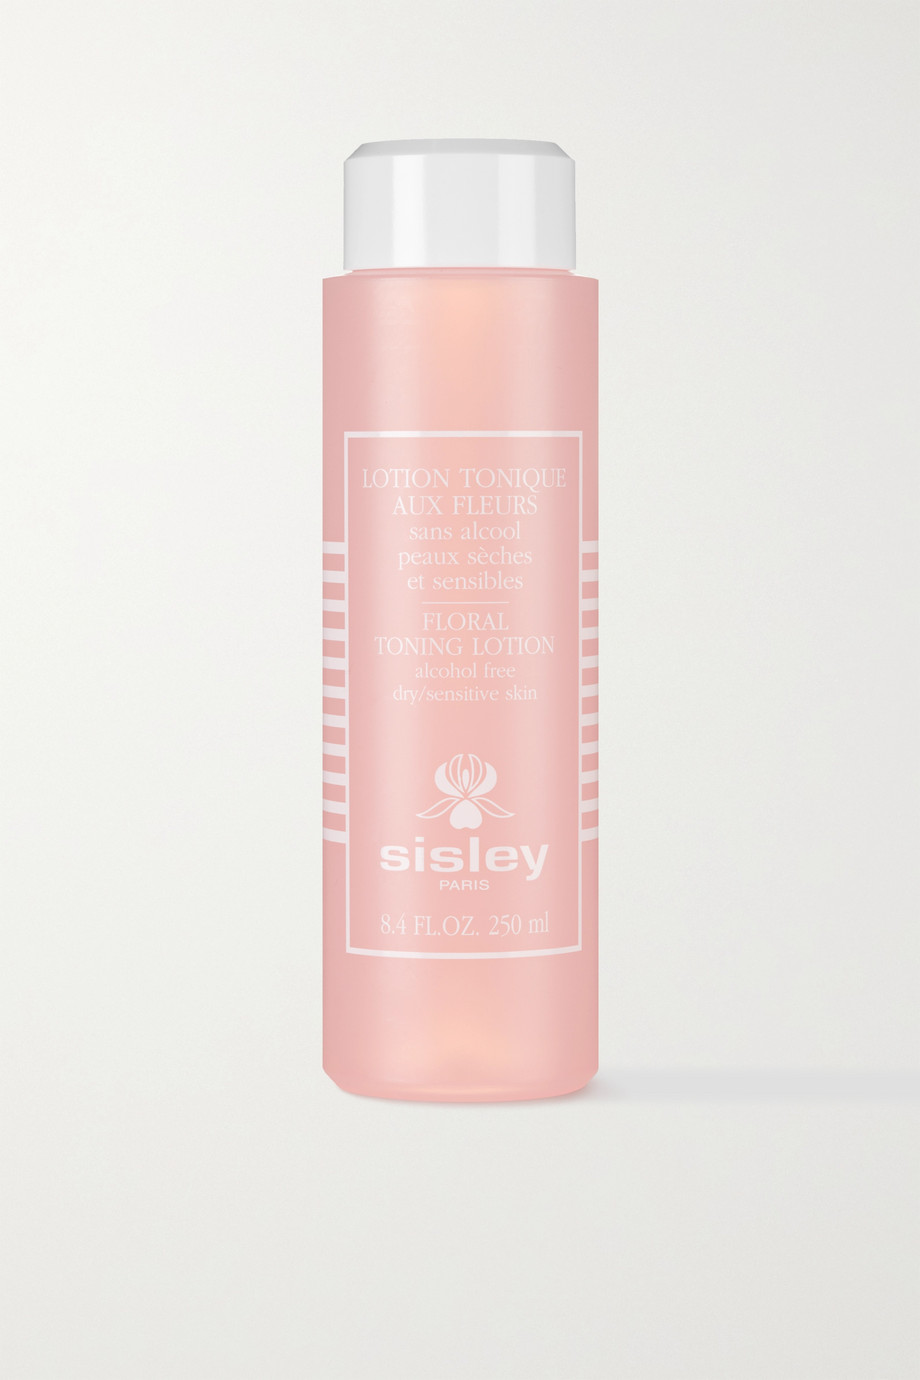 Floral Toning Lotion, 250ml, by Sisley - Paris